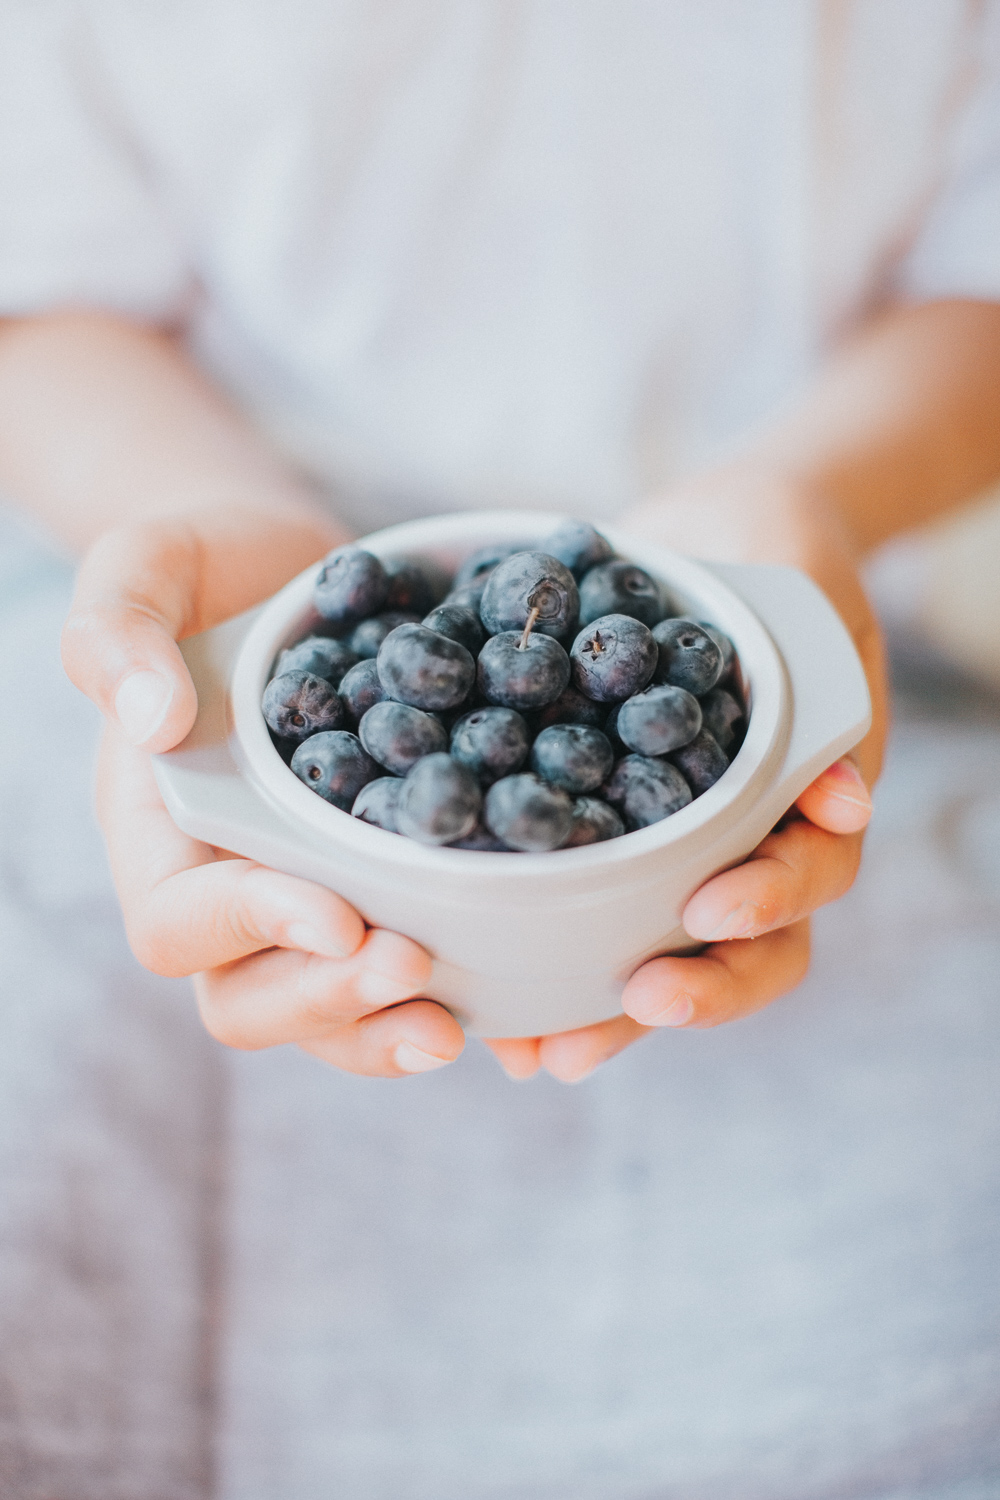 Color Adjustment Blueberries in a bowl photo still life image